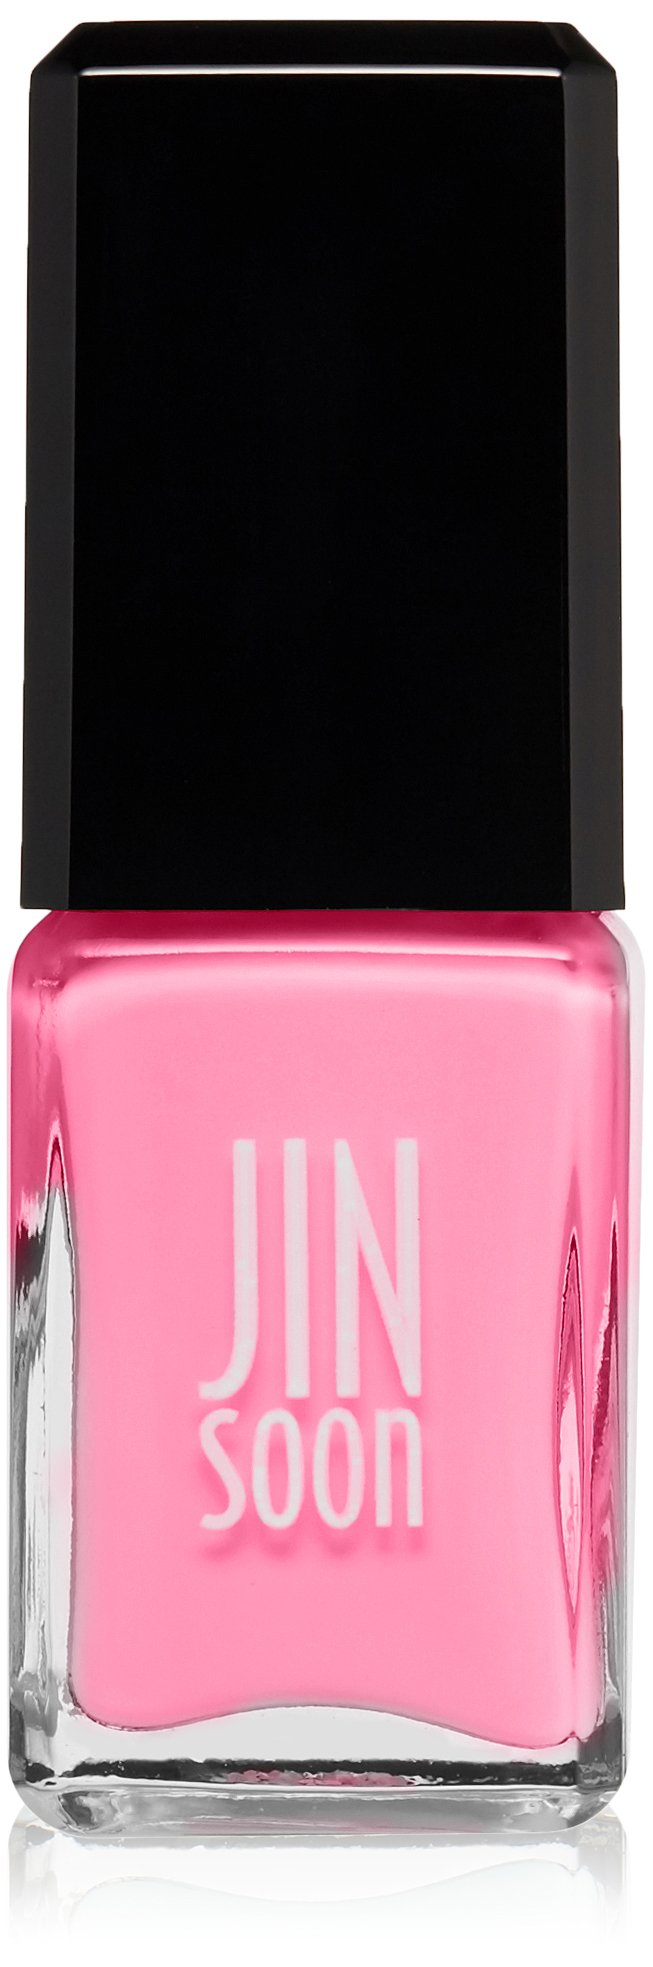 Amazon.com: JINsoon Nail Polish, Hope, 0.37 fl. oz